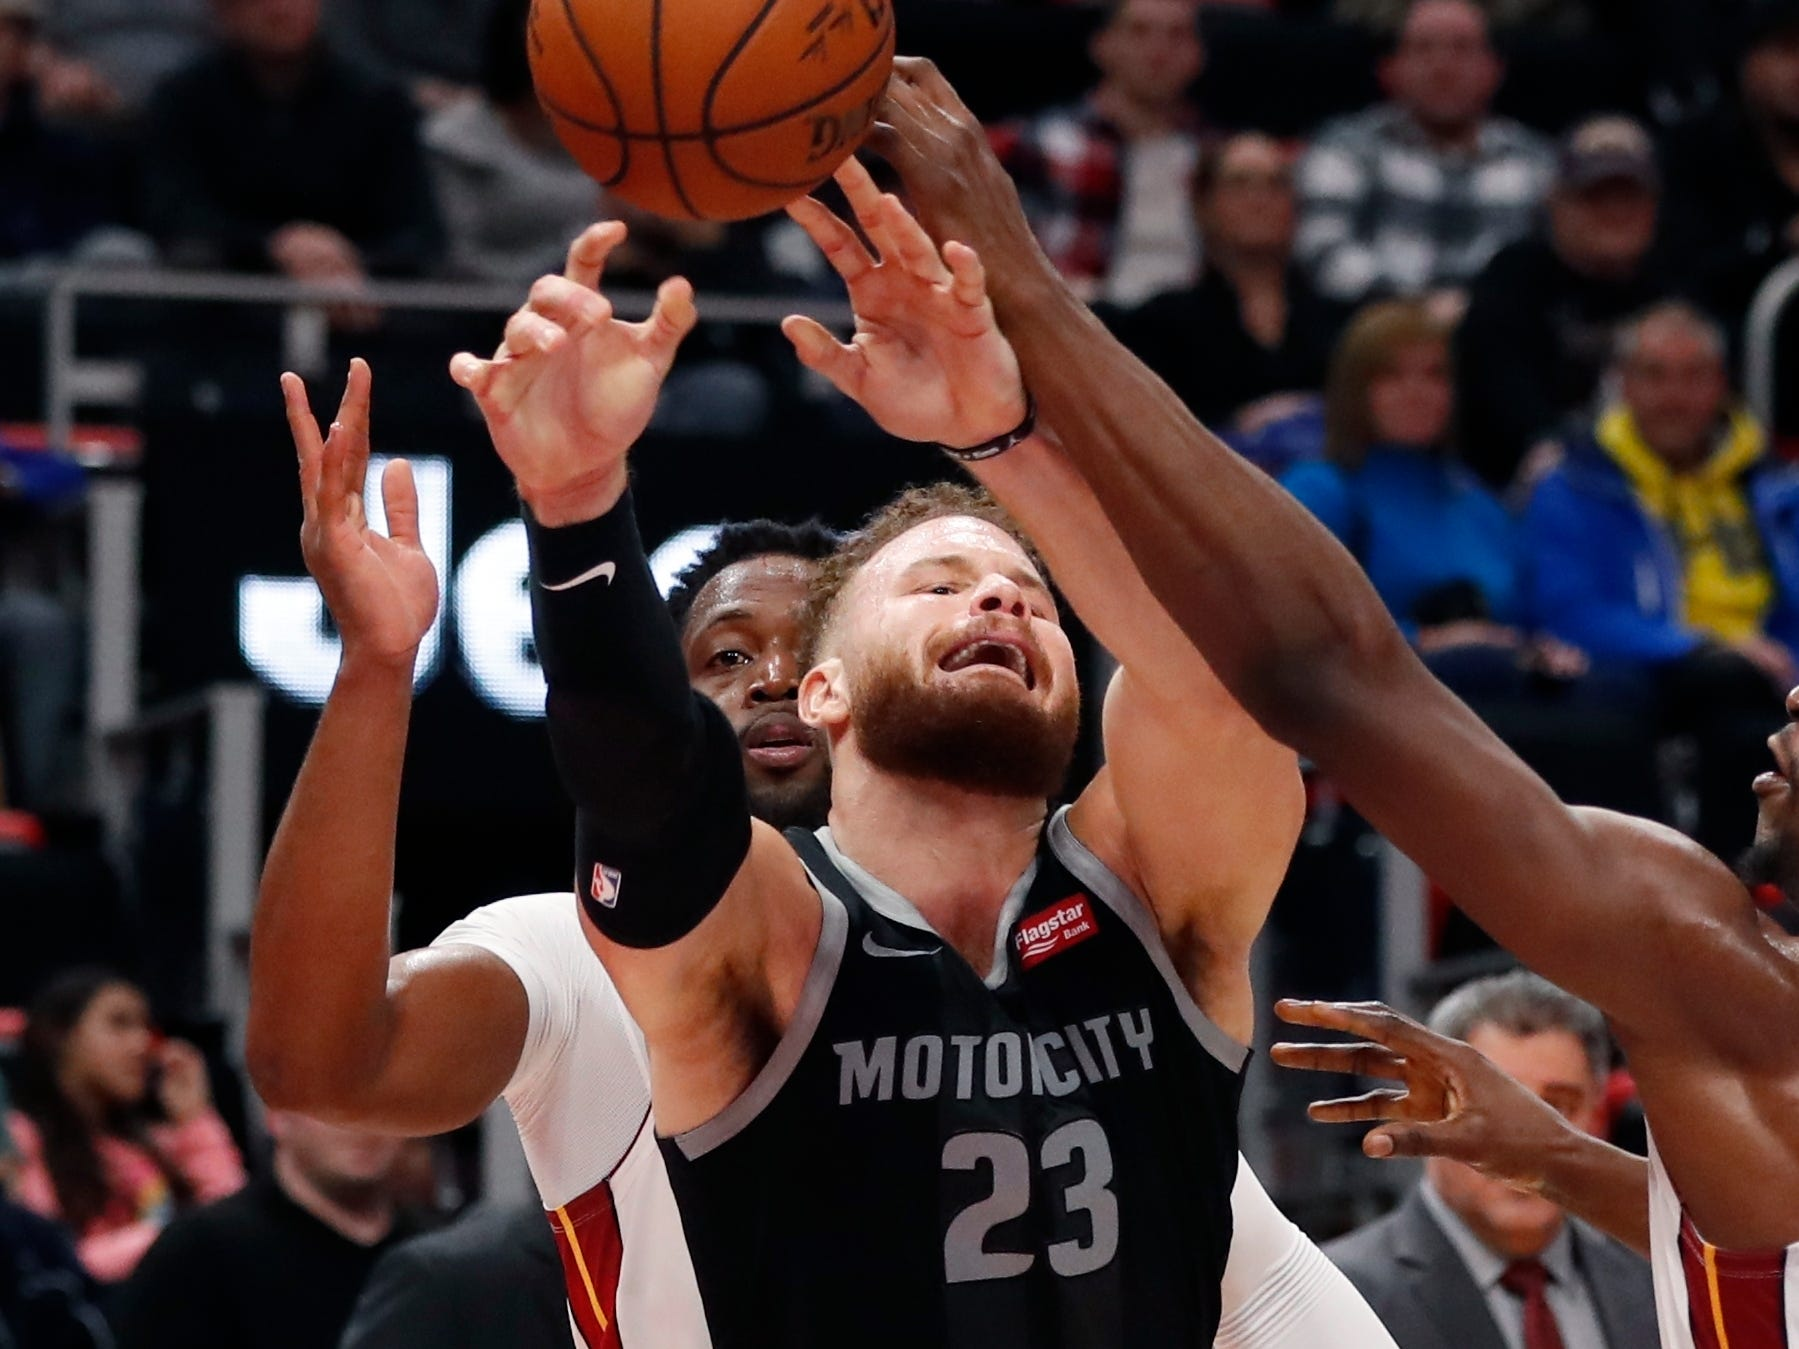 Detroit Pistons forward Blake Griffin (23) loses control of the ball as Miami Heat guard Dwyane Wade, rear, and center Bam Adebayo, right, defend during the second half.